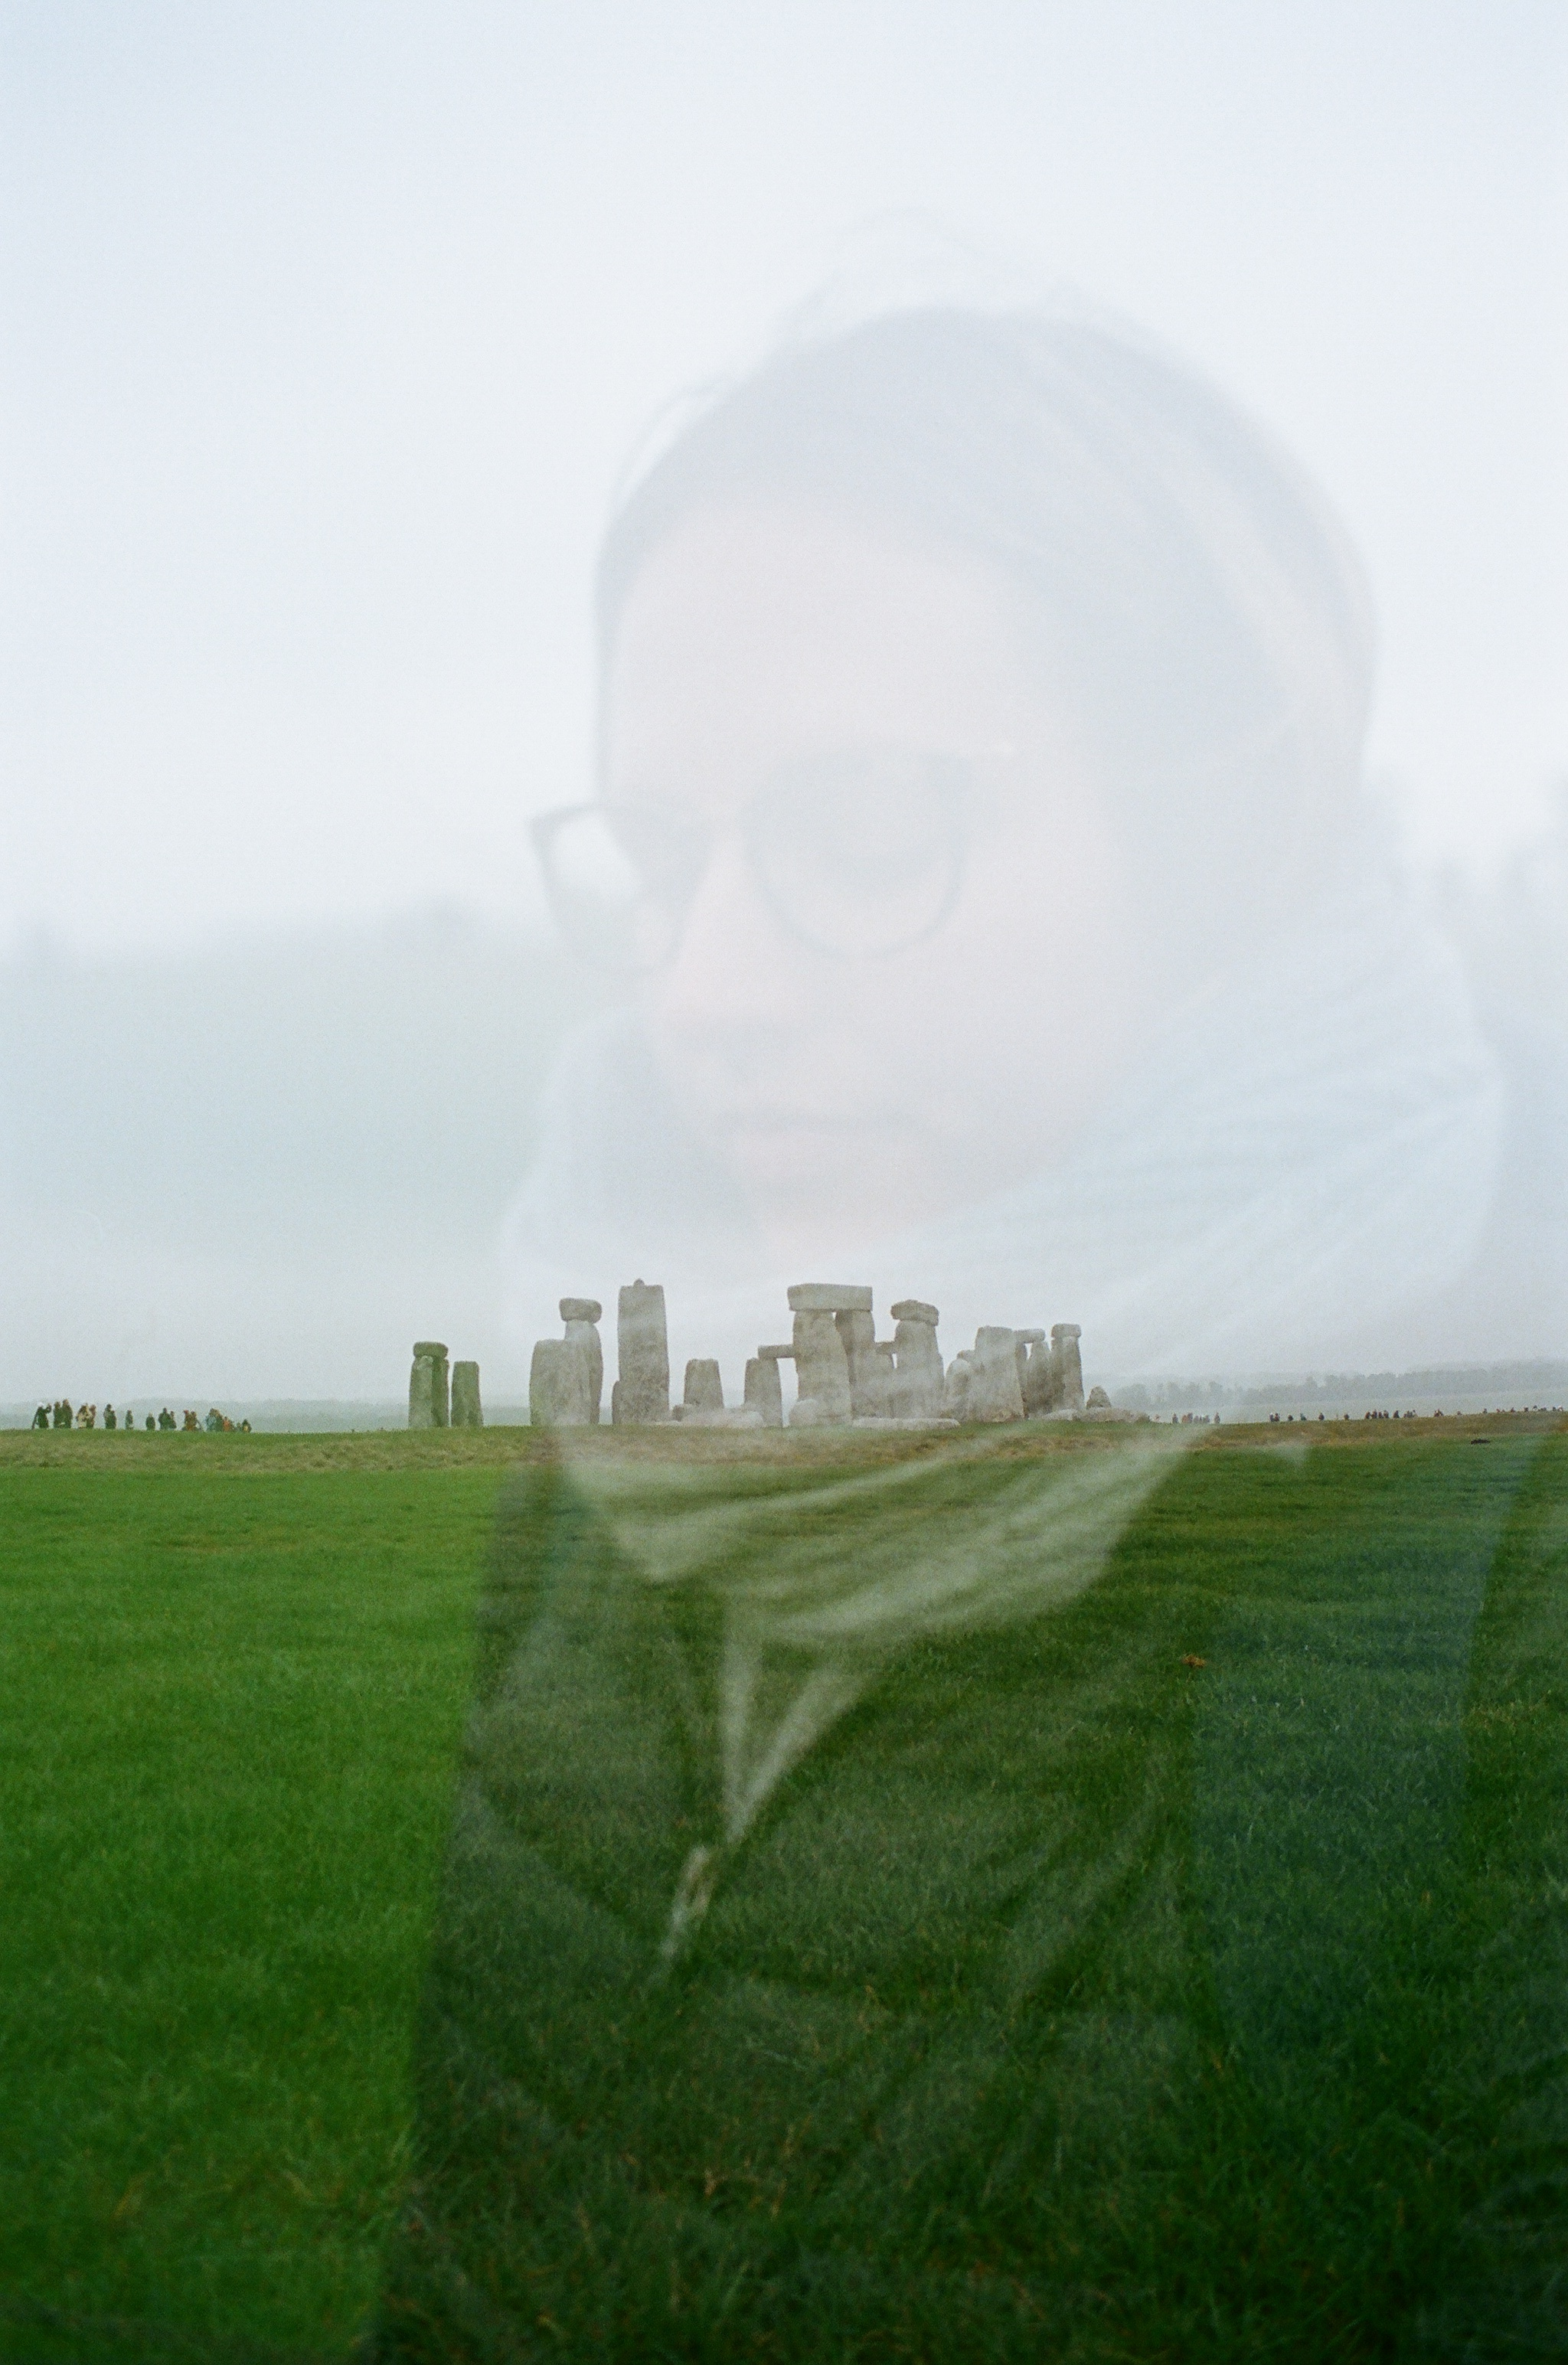 90 Stonehenge DOUBLE EXPOSURE.JPG